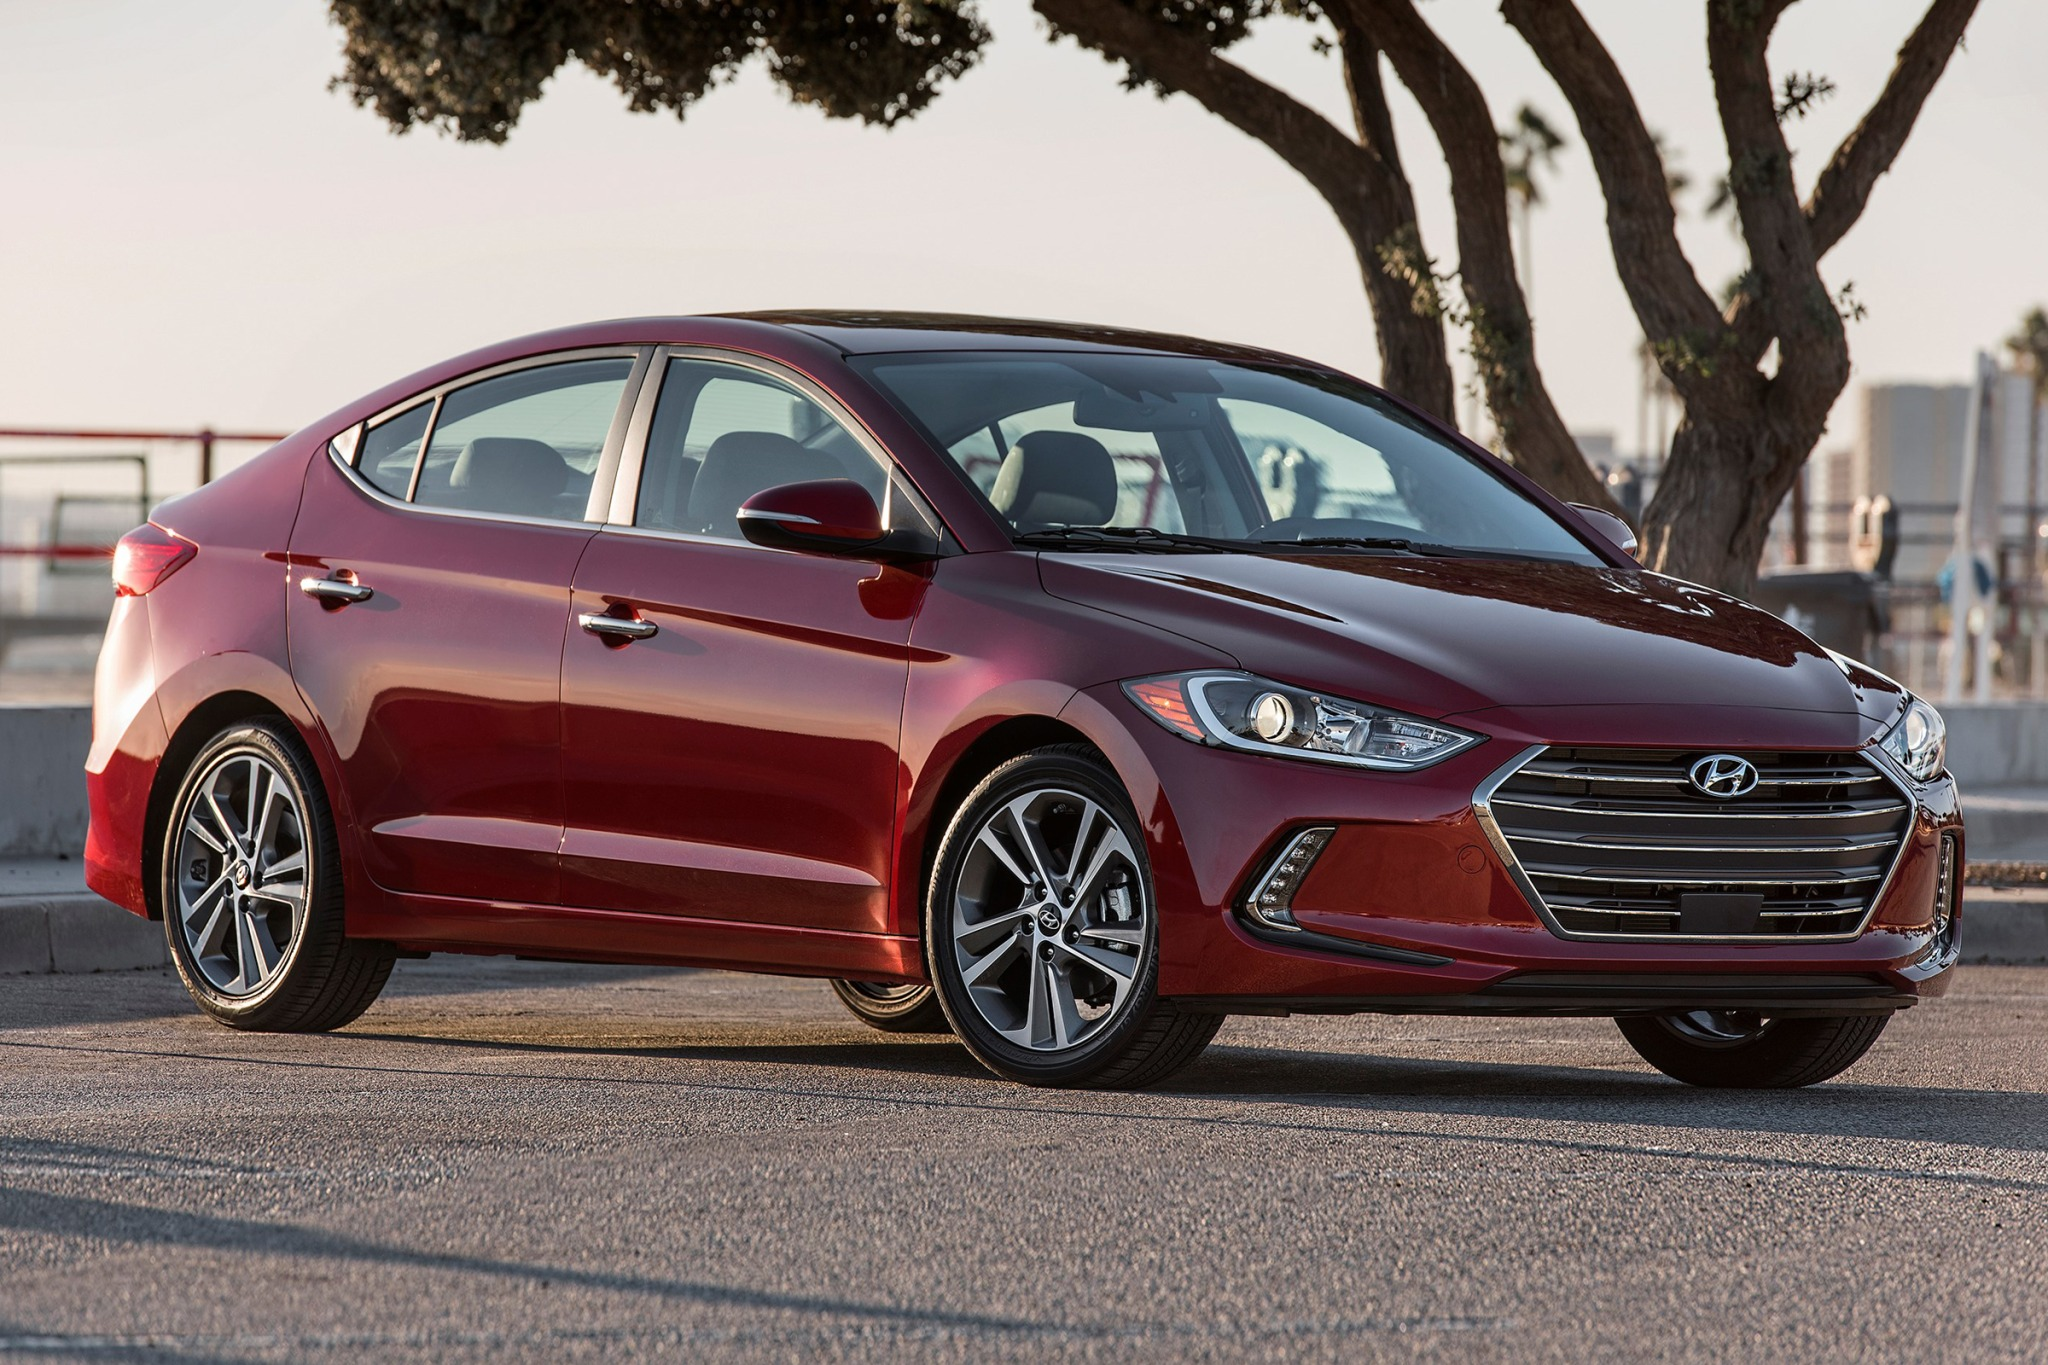 Maintenance Schedule For 2017 Hyundai Elantra Openbay